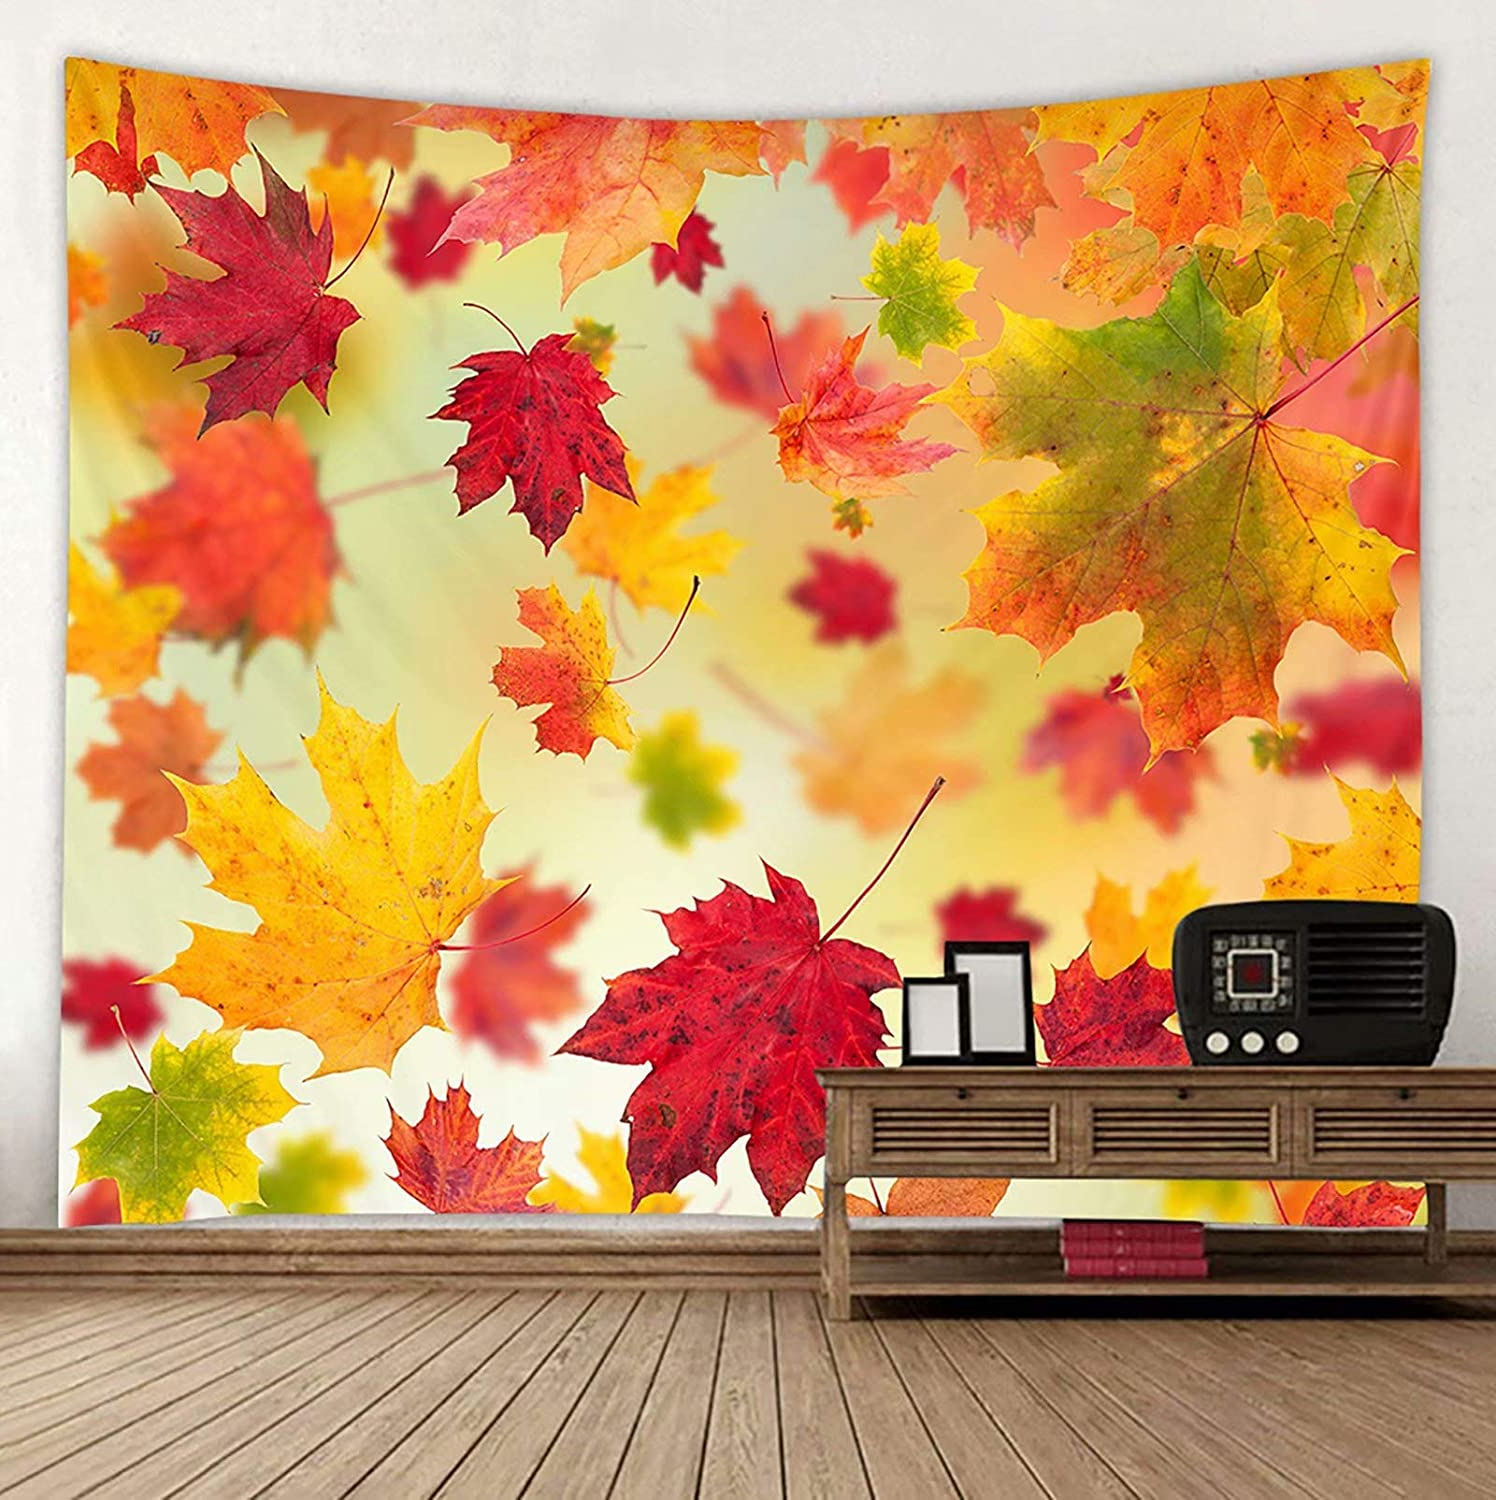 Well Known Blended Fabric Leaves Wall Hangings Pertaining To Shinesnow Fallen Fall Autumn Leaves Maple Wall Hanging Tapestry 60 X 51 Inches, Seasonal Golden Yellow House Decor Bedroom Living Room Dorm Tapestry (View 3 of 20)